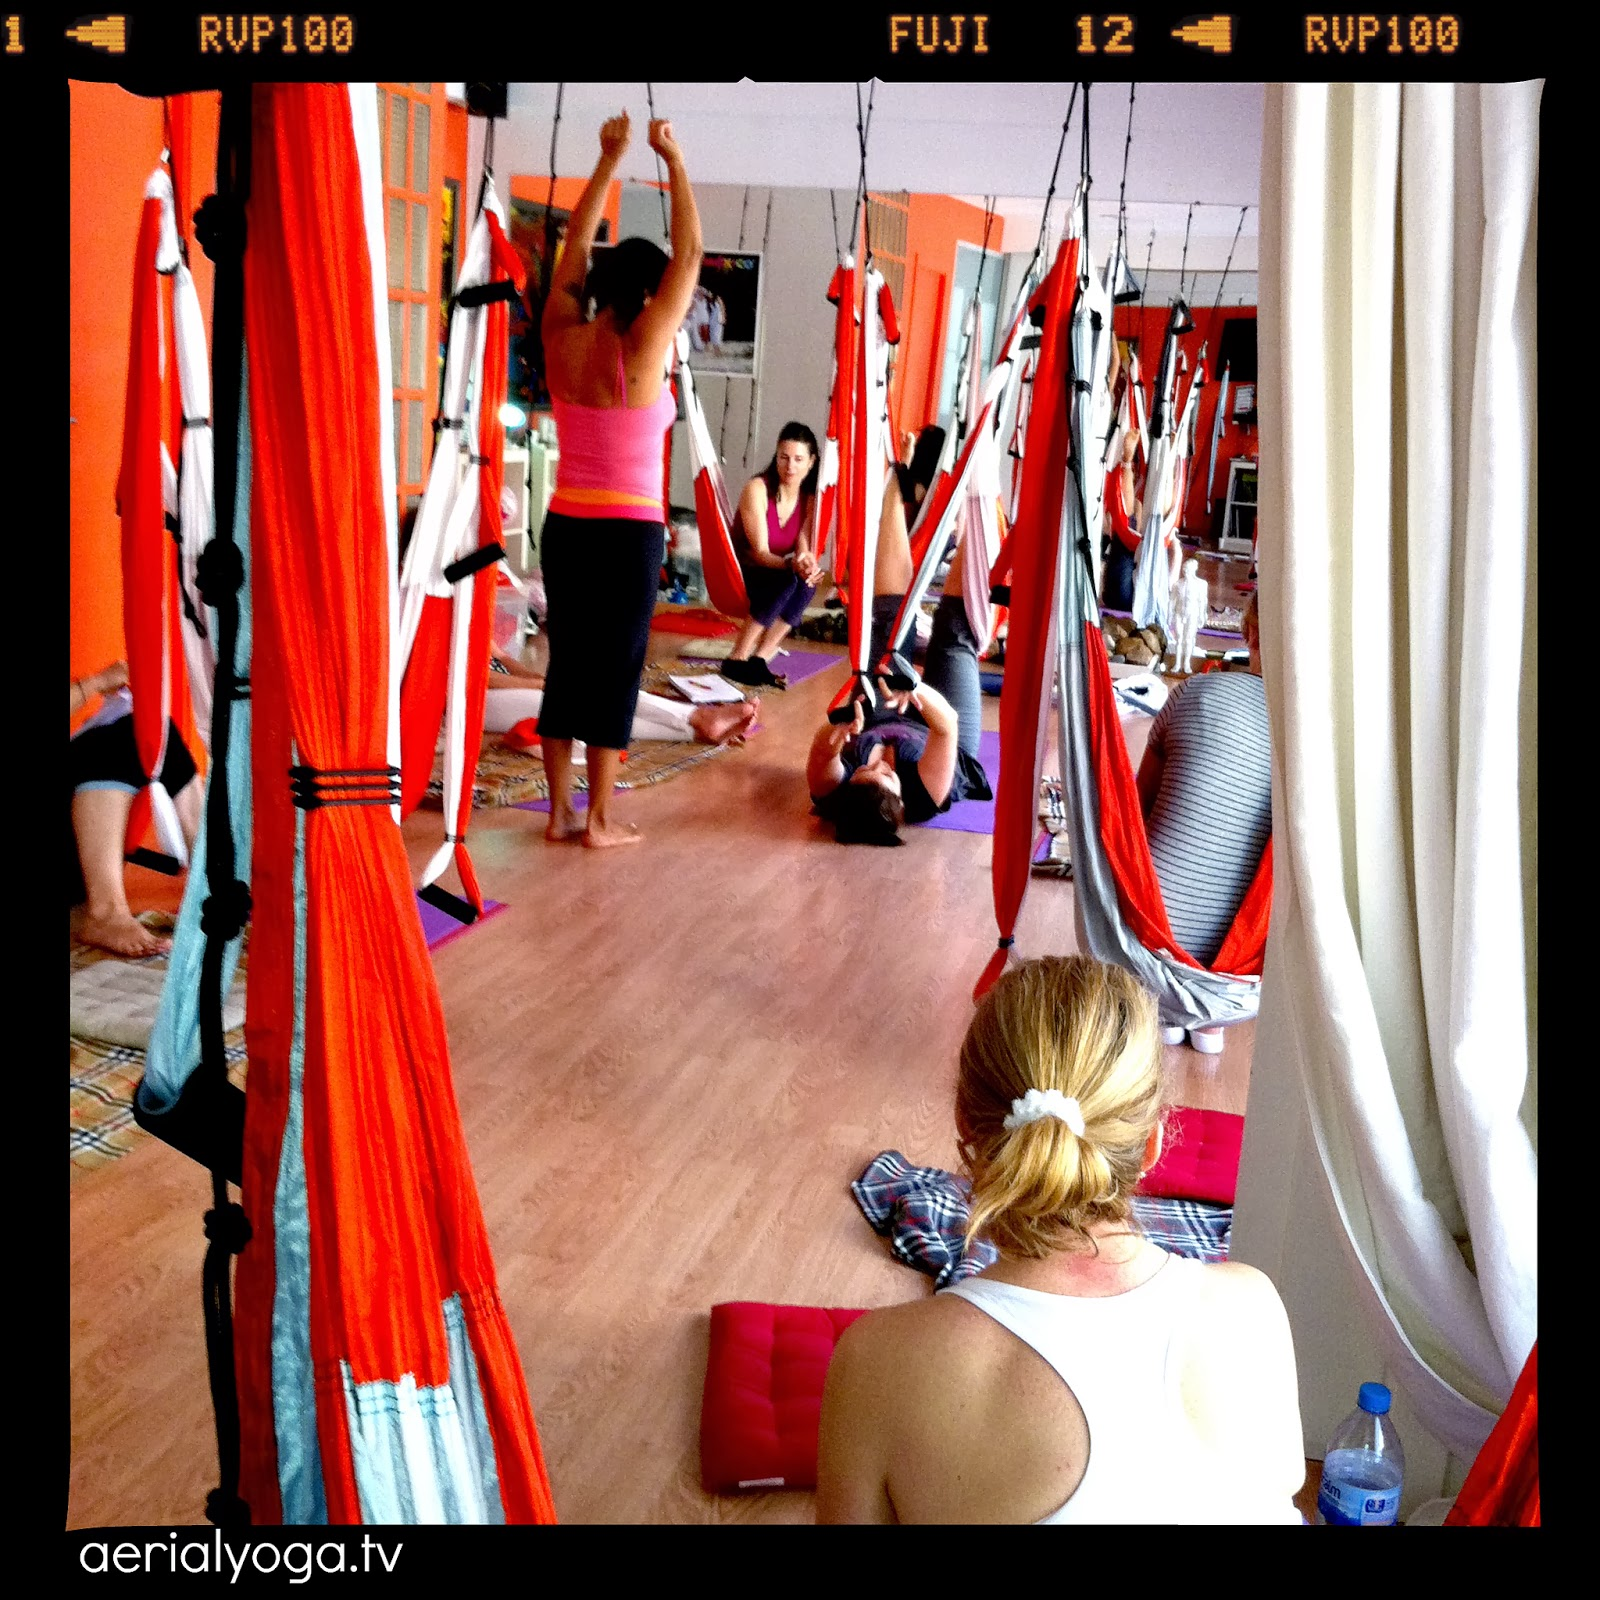 AERIAL YOGA USA, AERIAL POSE, AERO YOGA TEACHERS TRAINING, YOGA SWING , AERIAL PILATES,  SPAIN USA